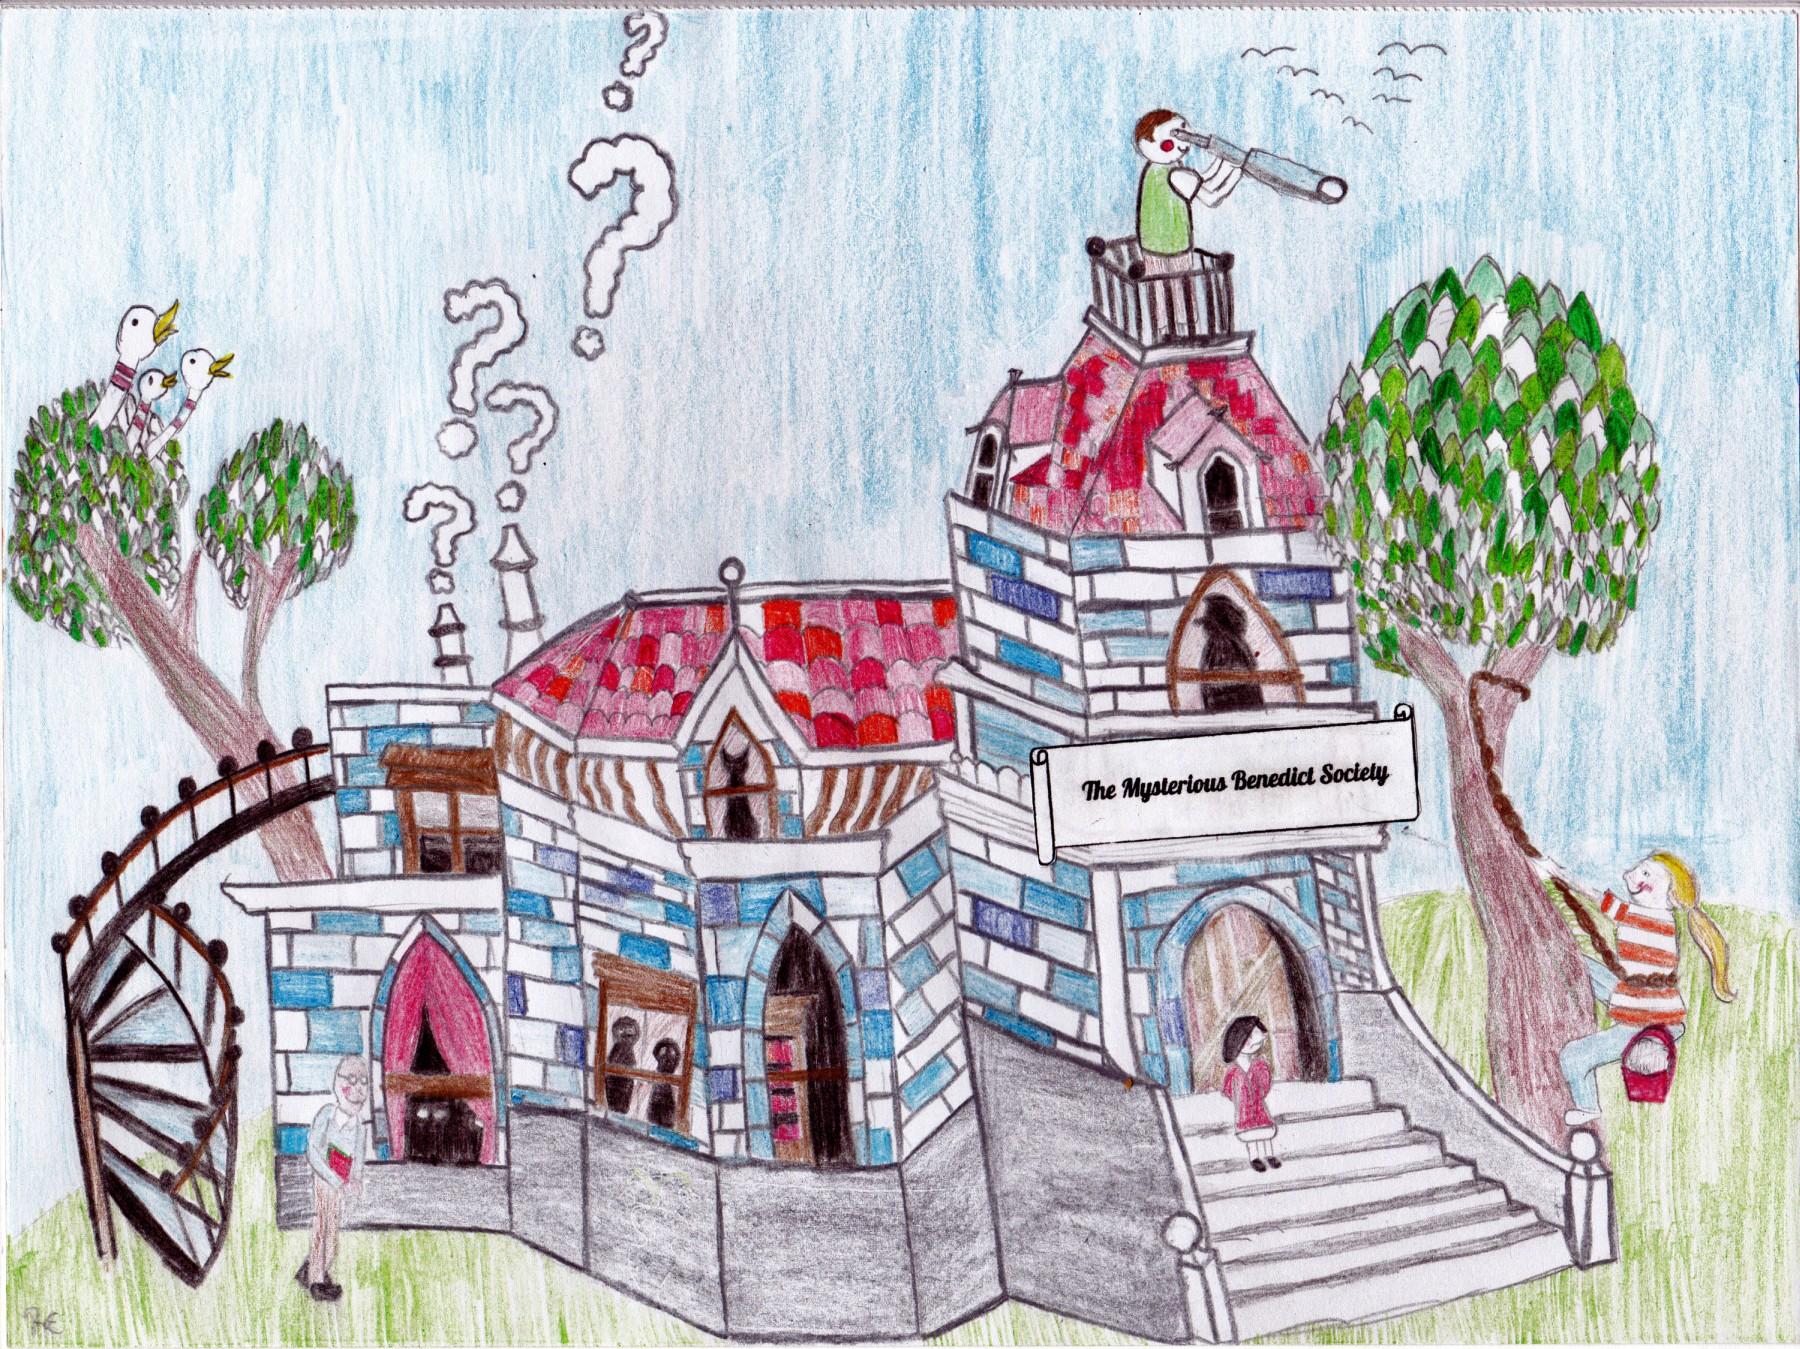 The Mysterious Benedict Society, by Raquel Edwards - Age 11